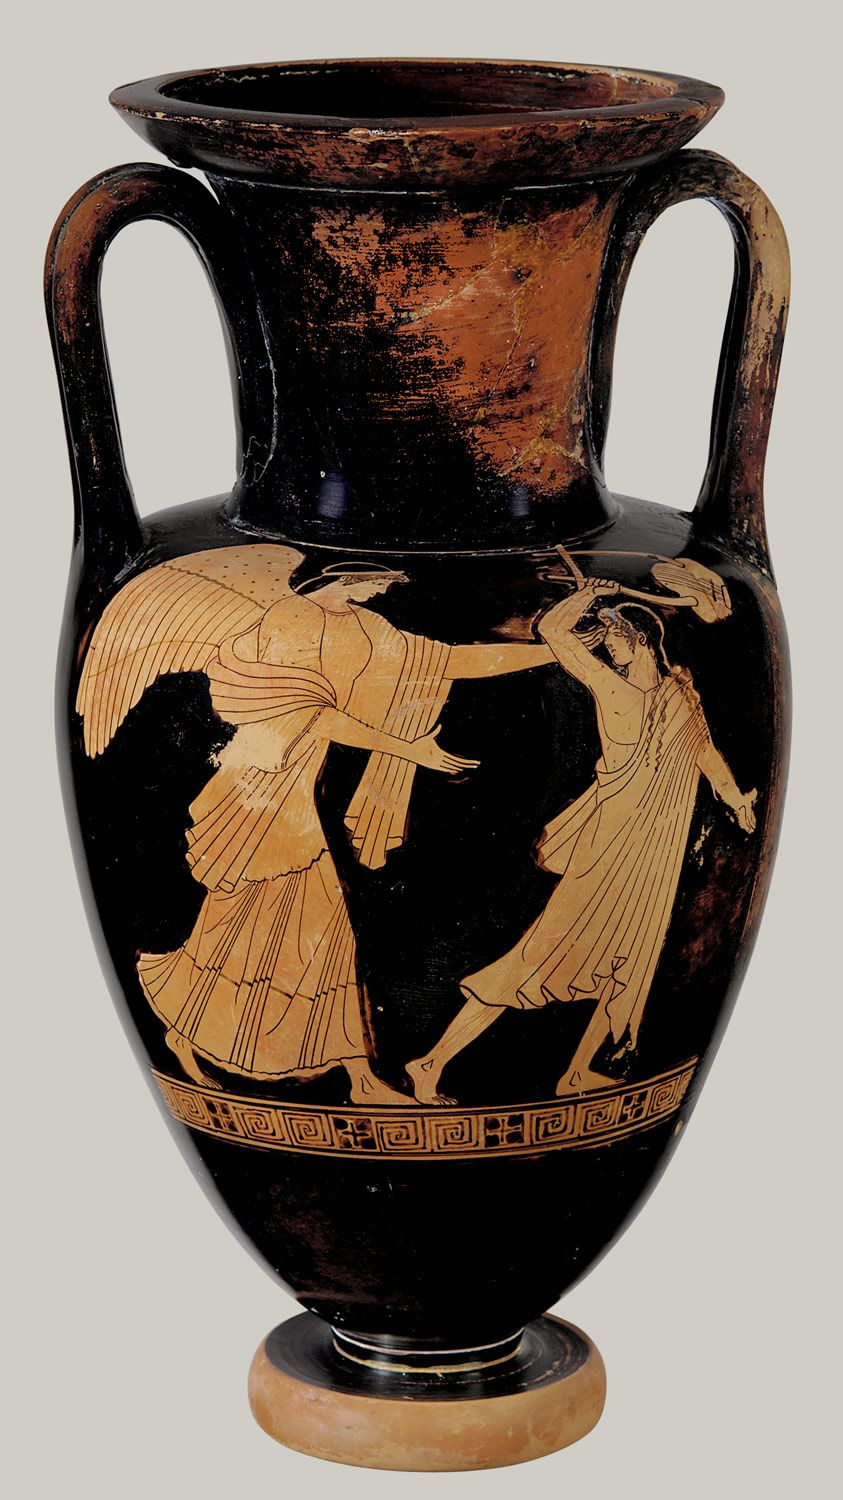 Terracotta Nolan neck-amphora (jar) Attributed to the Achilles Painter Period…